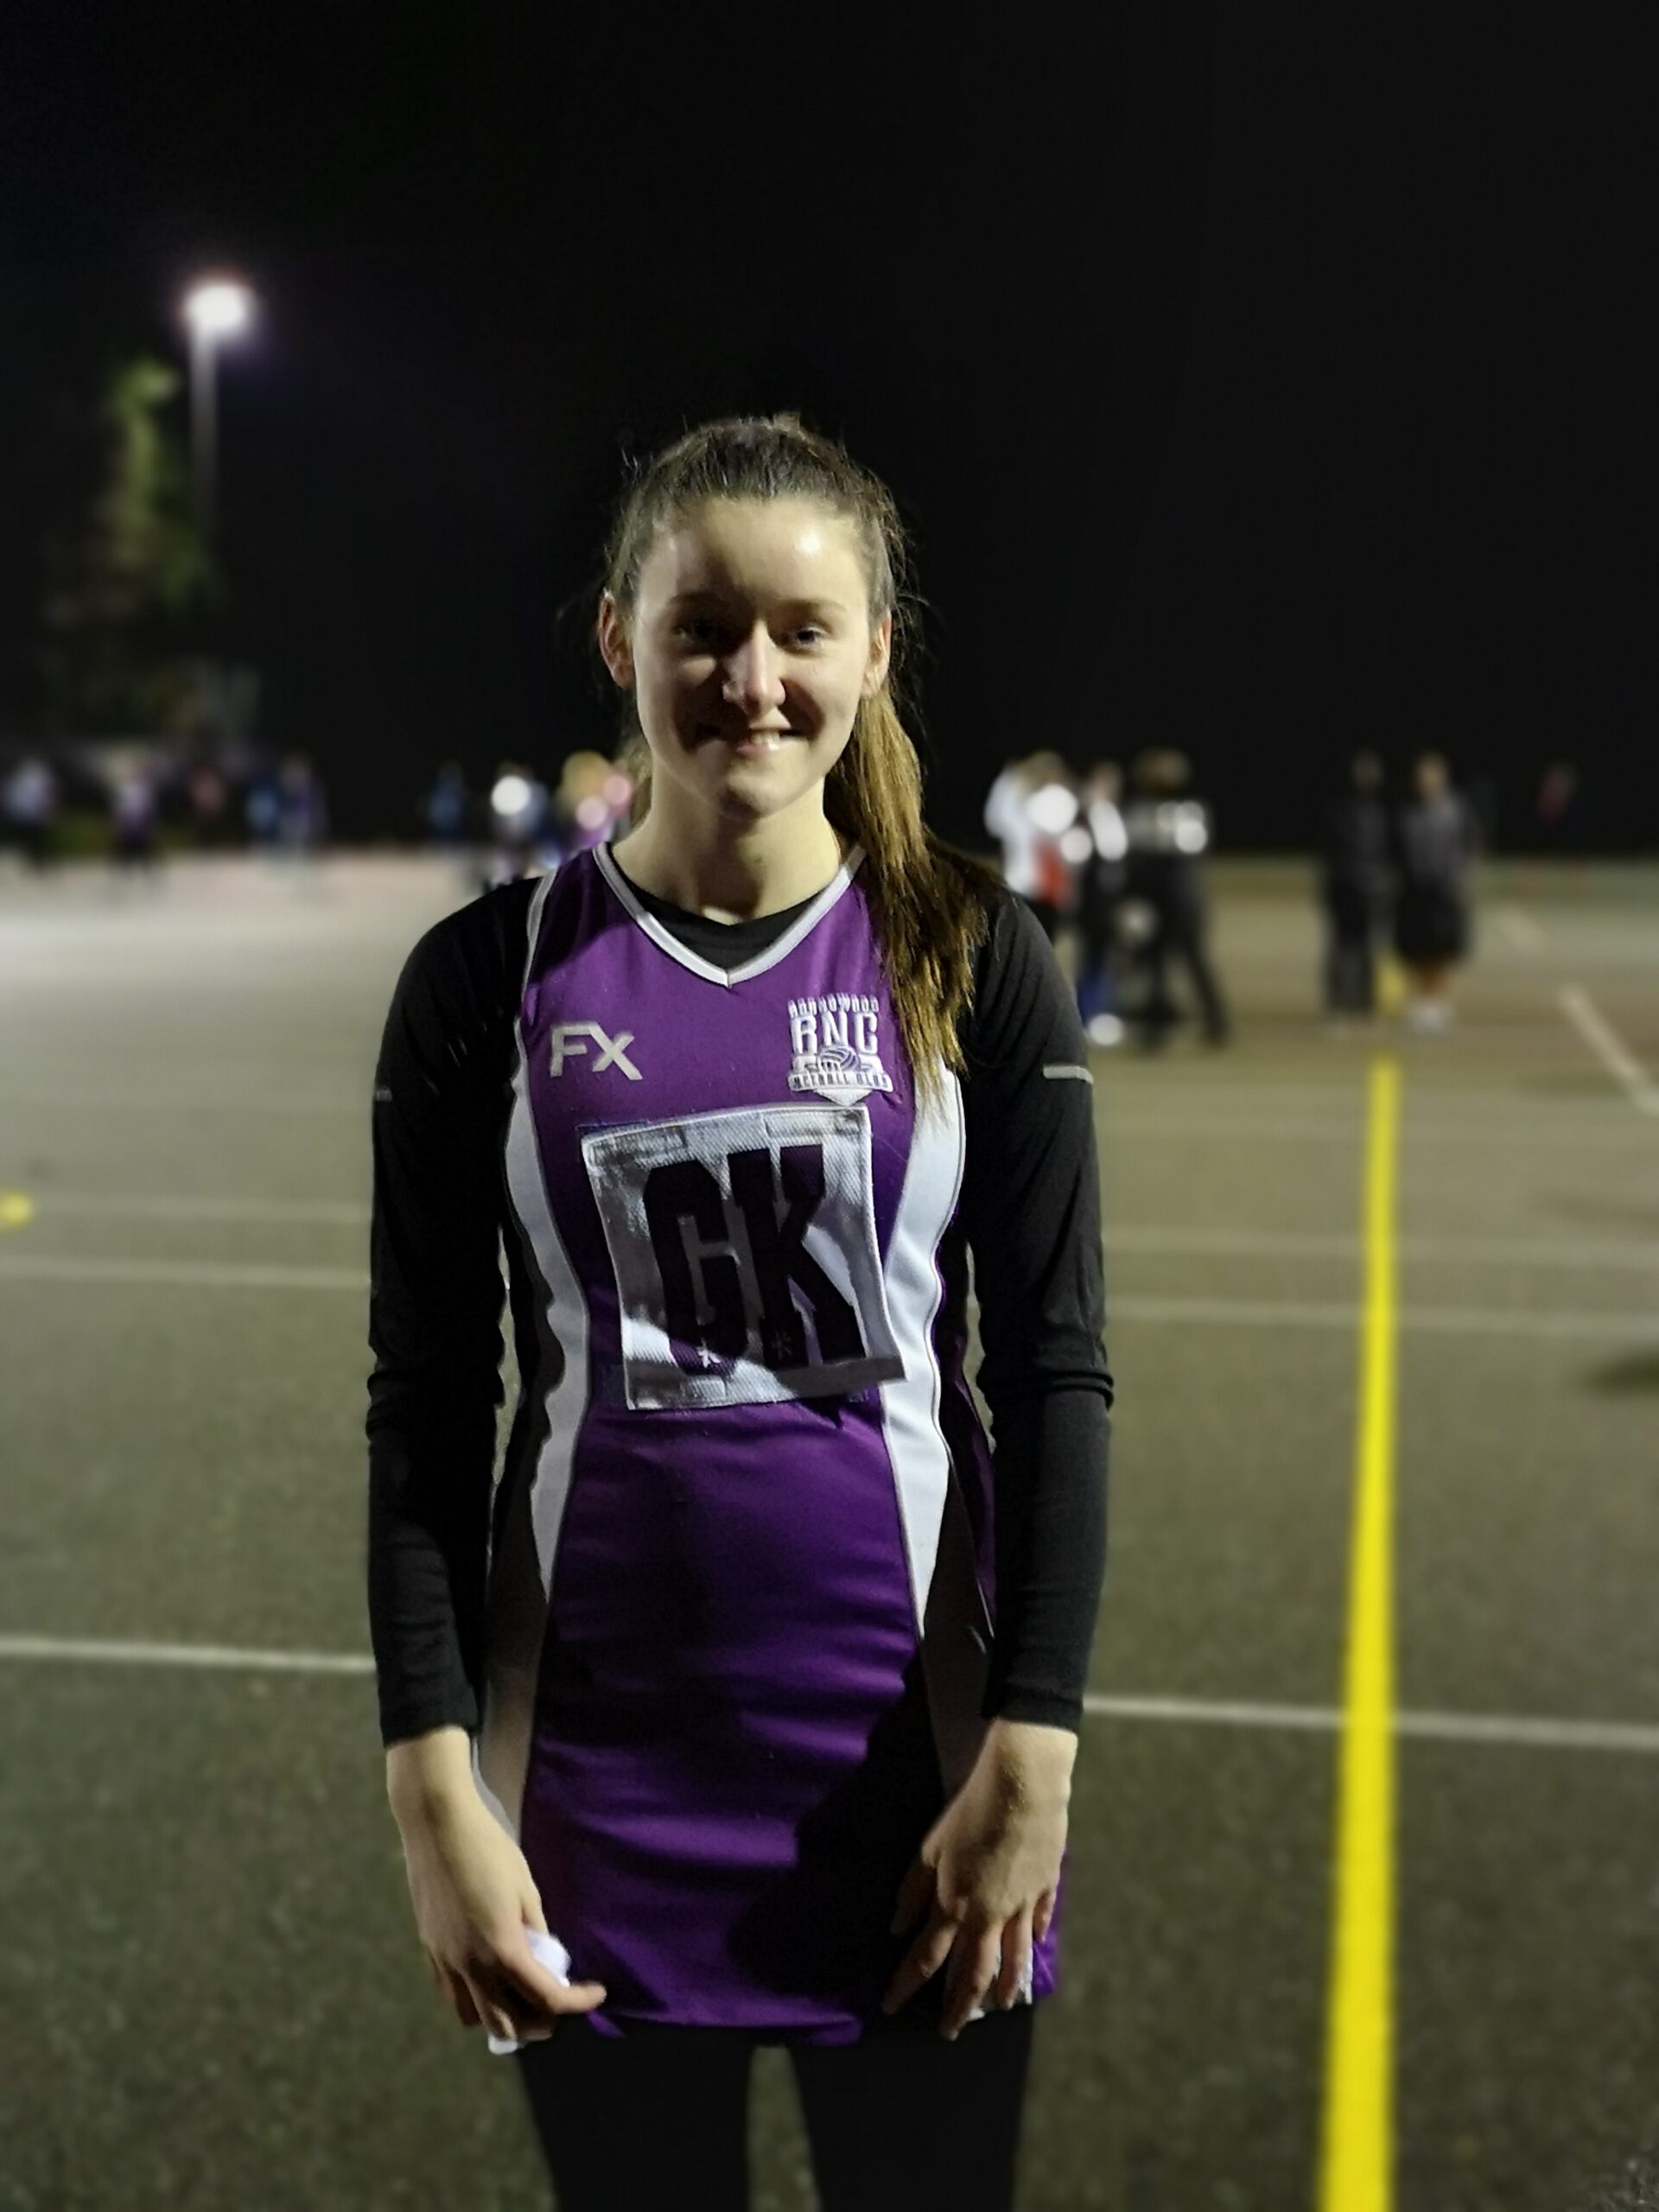 Jess Self is our Autumn 2020 Jack Petchey Achievement Award winner